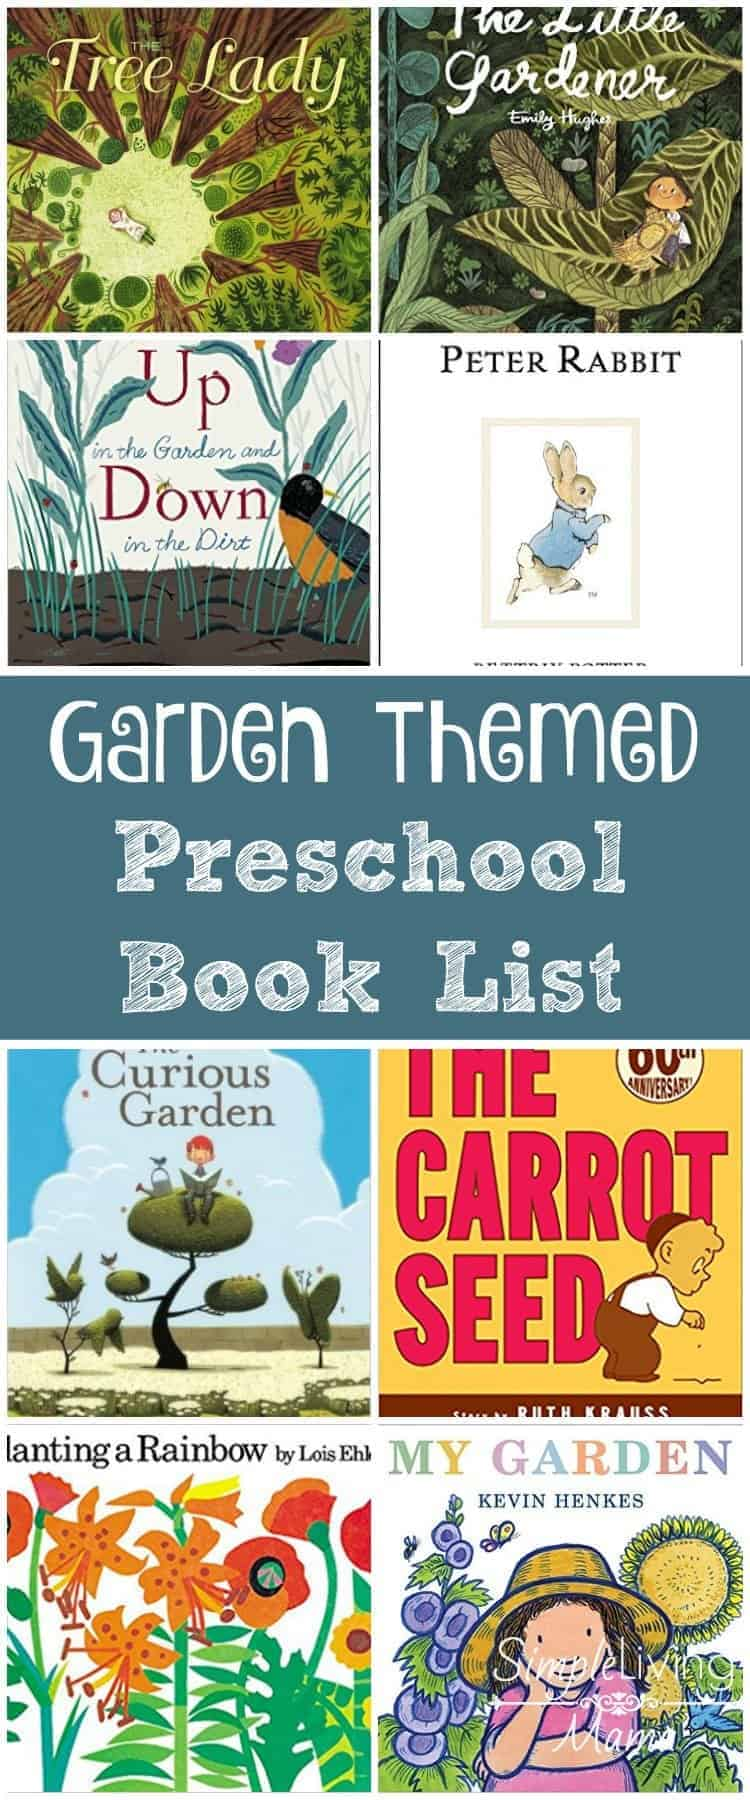 Garden themed preschool book list